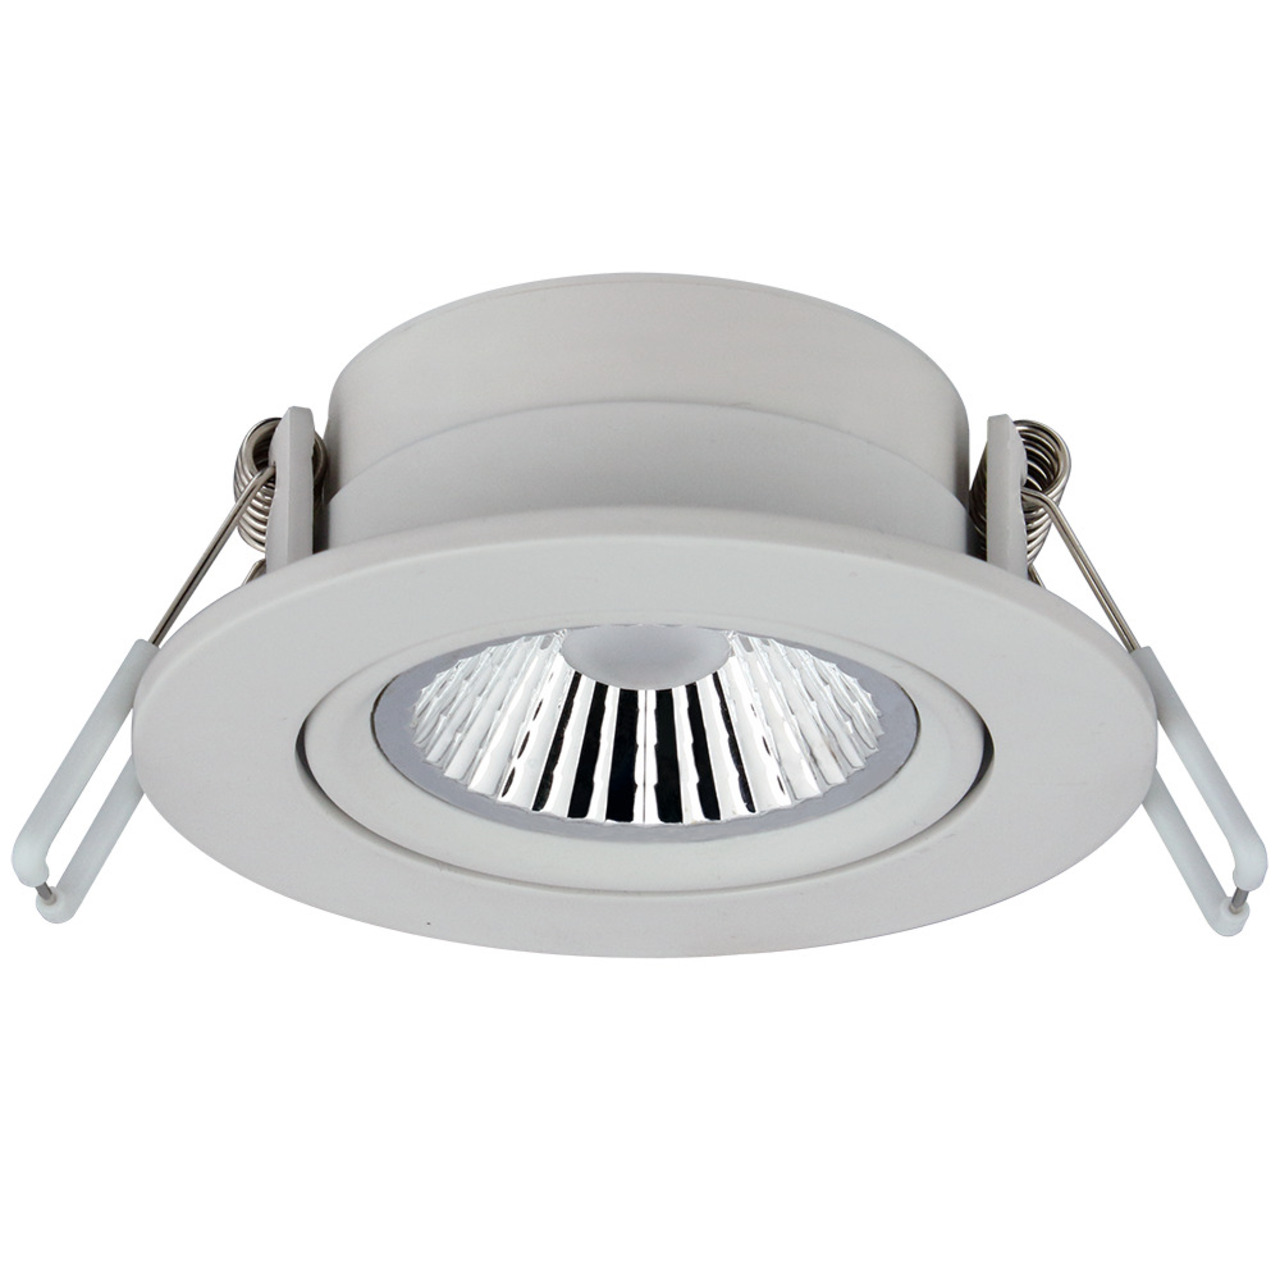 CV-Lighting 6-W-LED-Downlight- warmweiss- 36- dimmbar (dim to warm)- weiss